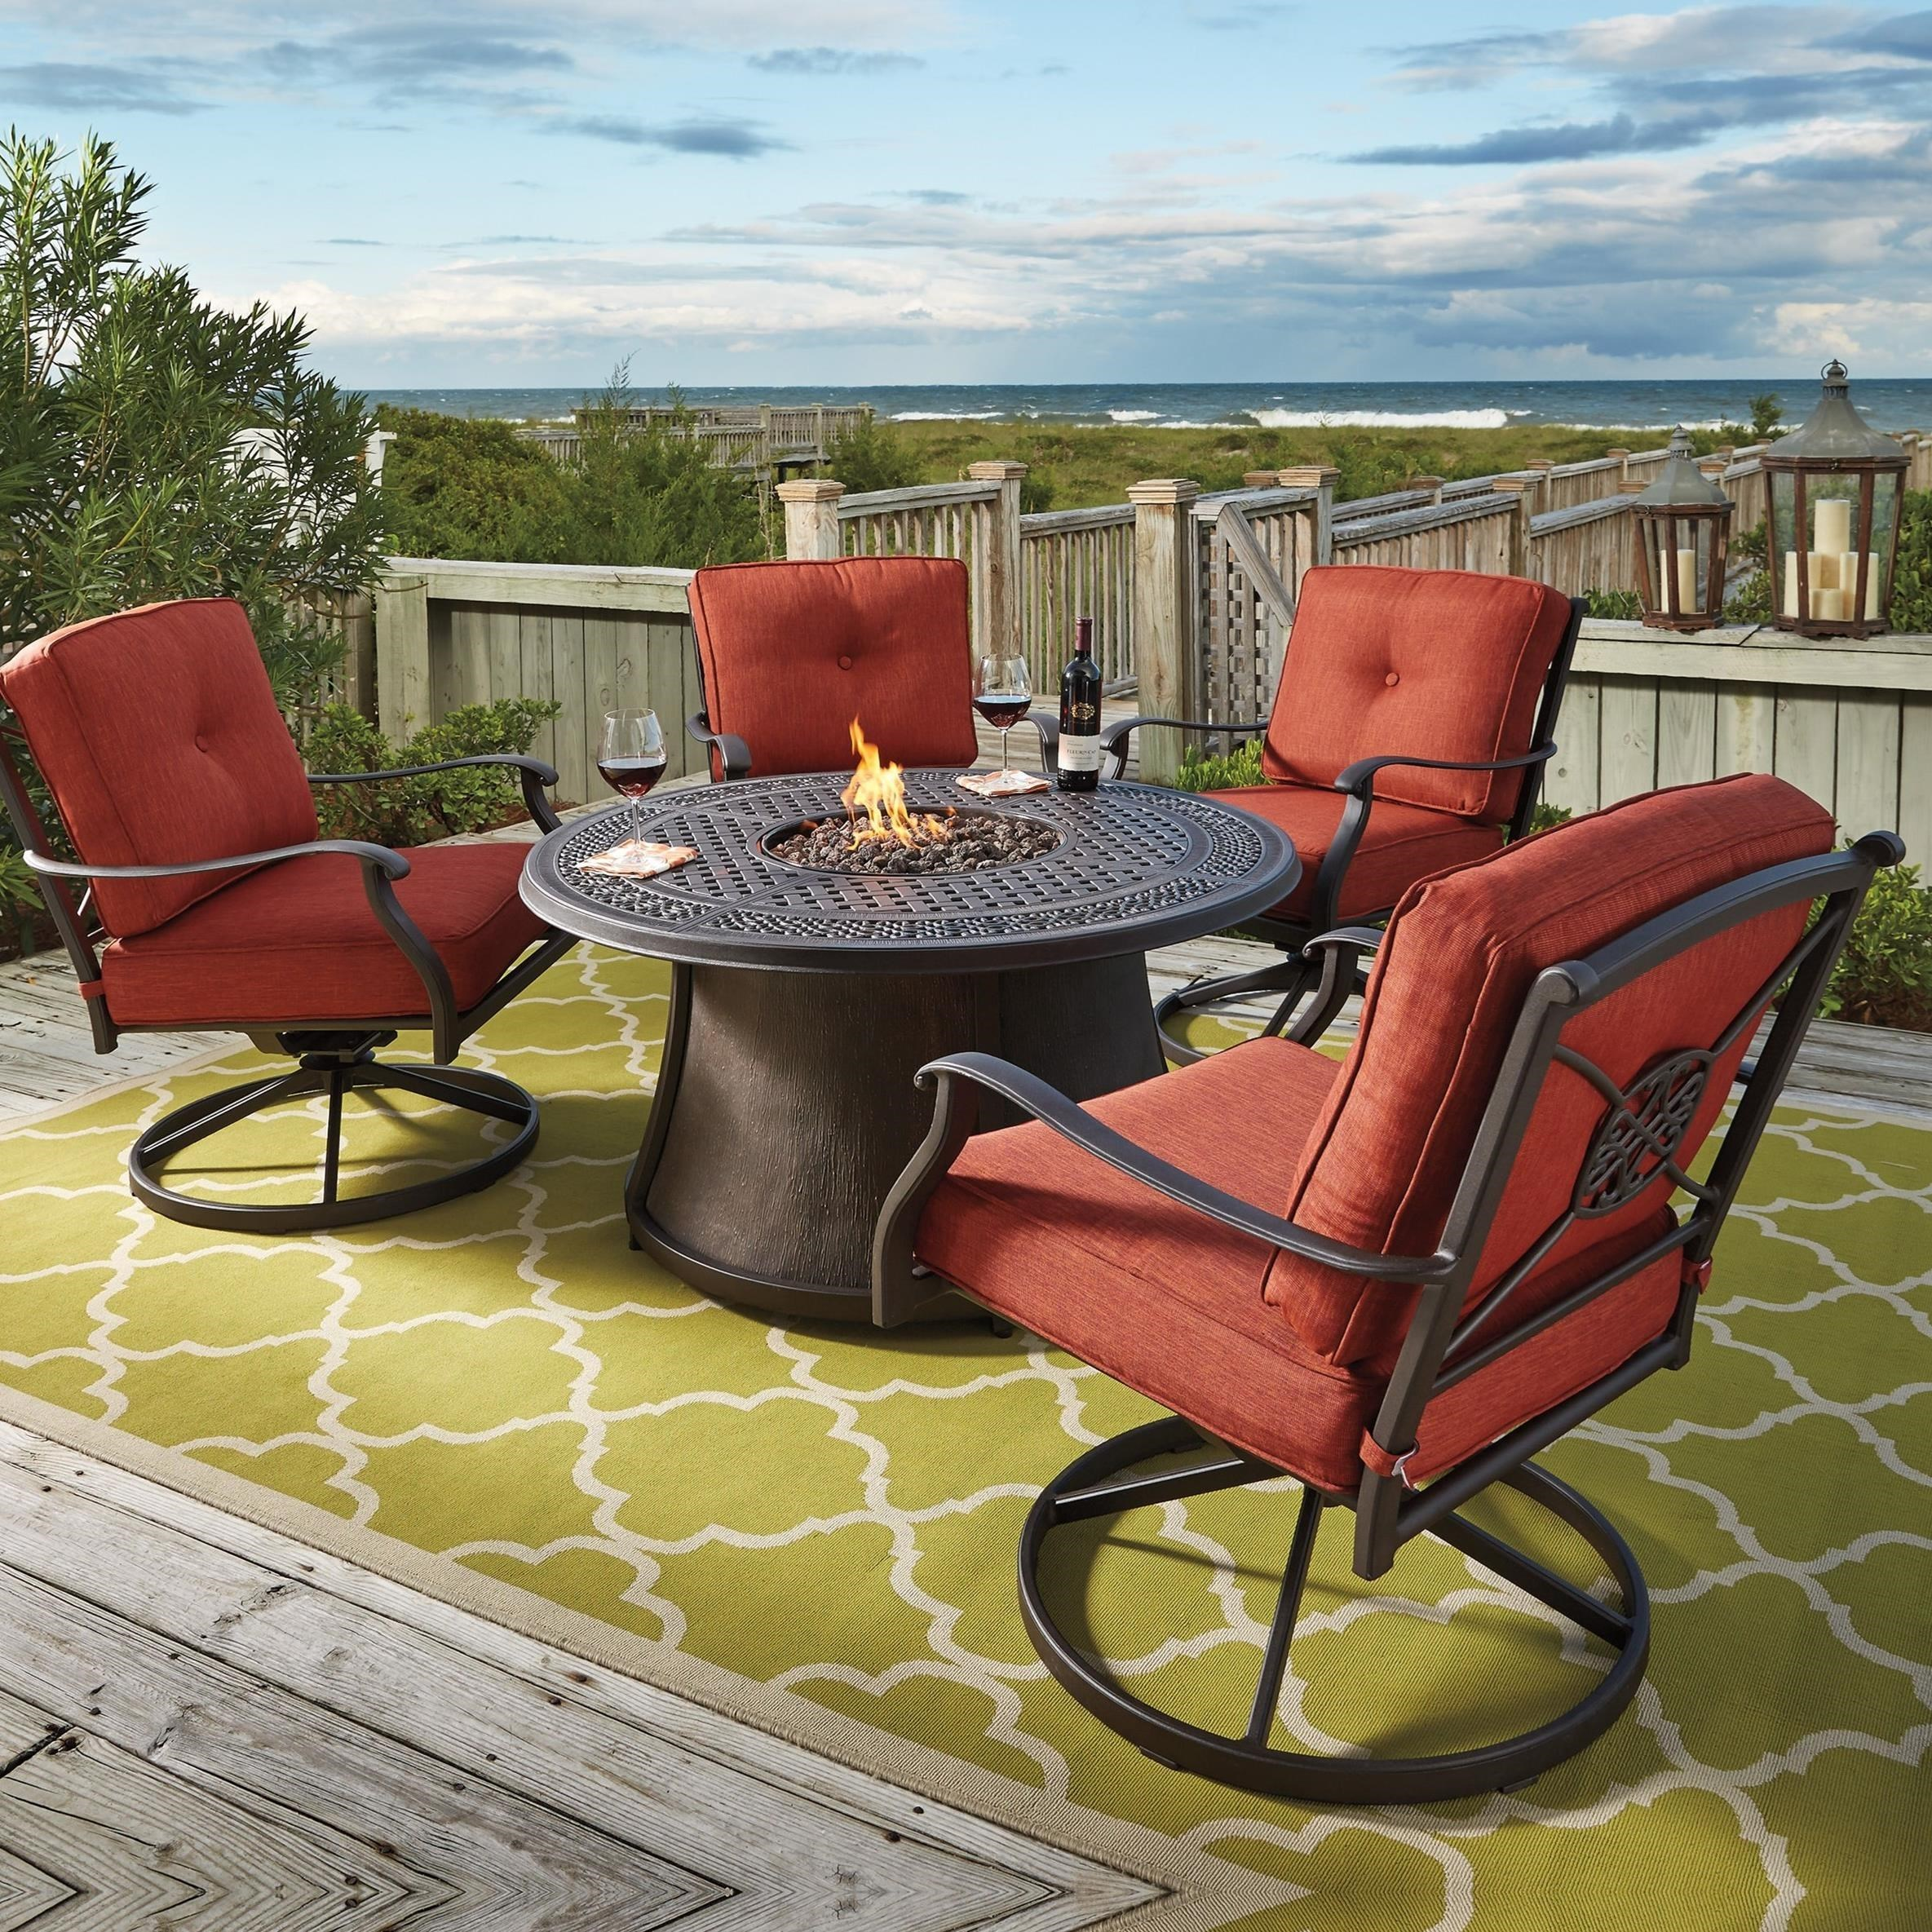 High Quality Signature Design By Ashley Burnella 5 Piece Outdoor Fire Pit Set   Furniture  And ApplianceMart   Outdoor Conversation Sets/Outdoor Chat Sets